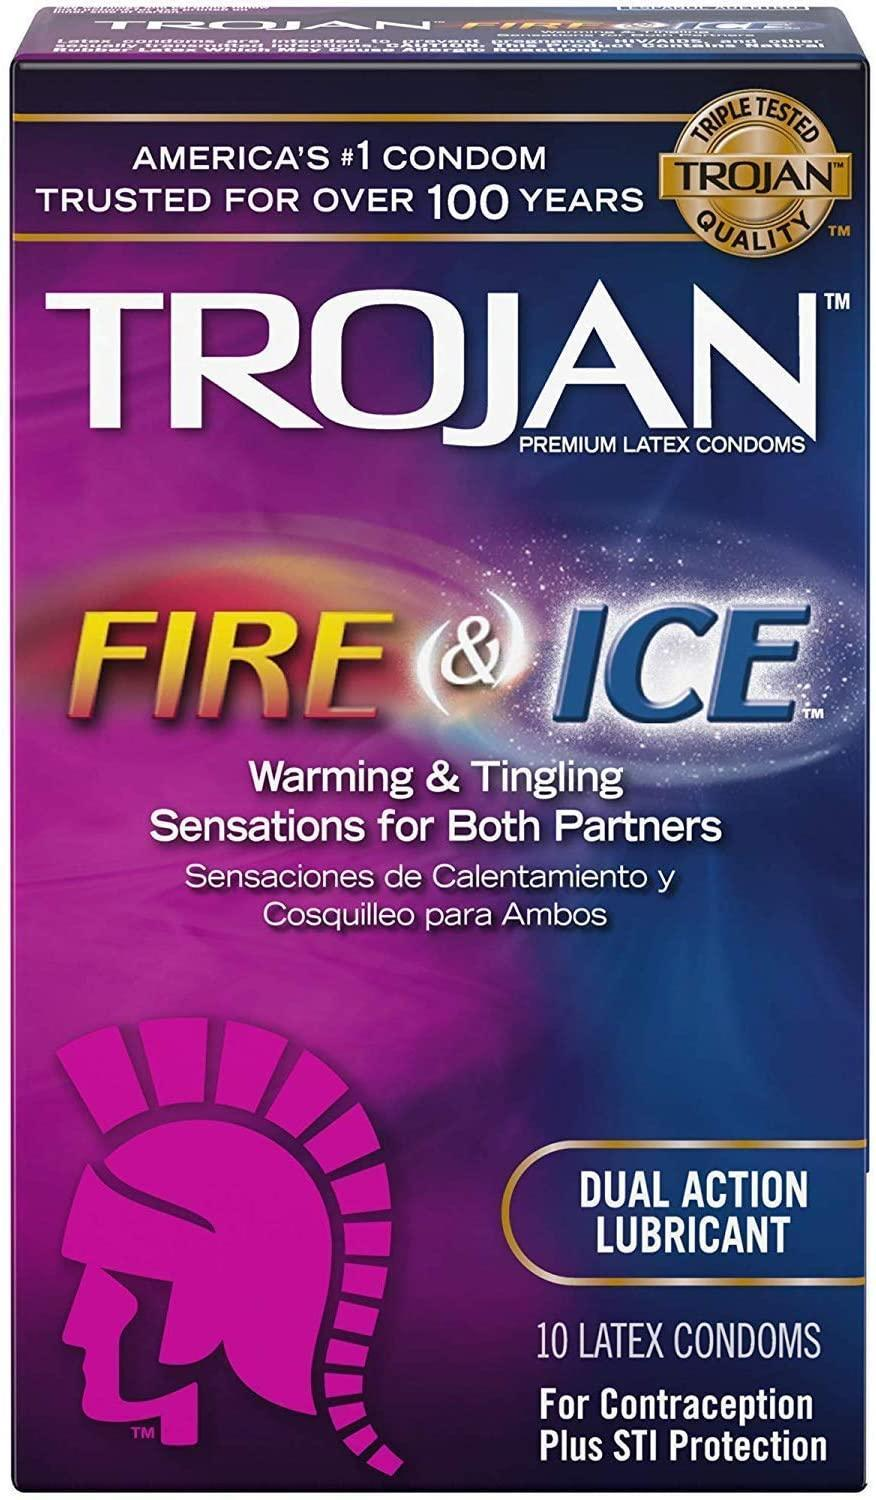 TROJAN Pleasures Fire and Ice Double Action Lubricated Condoms